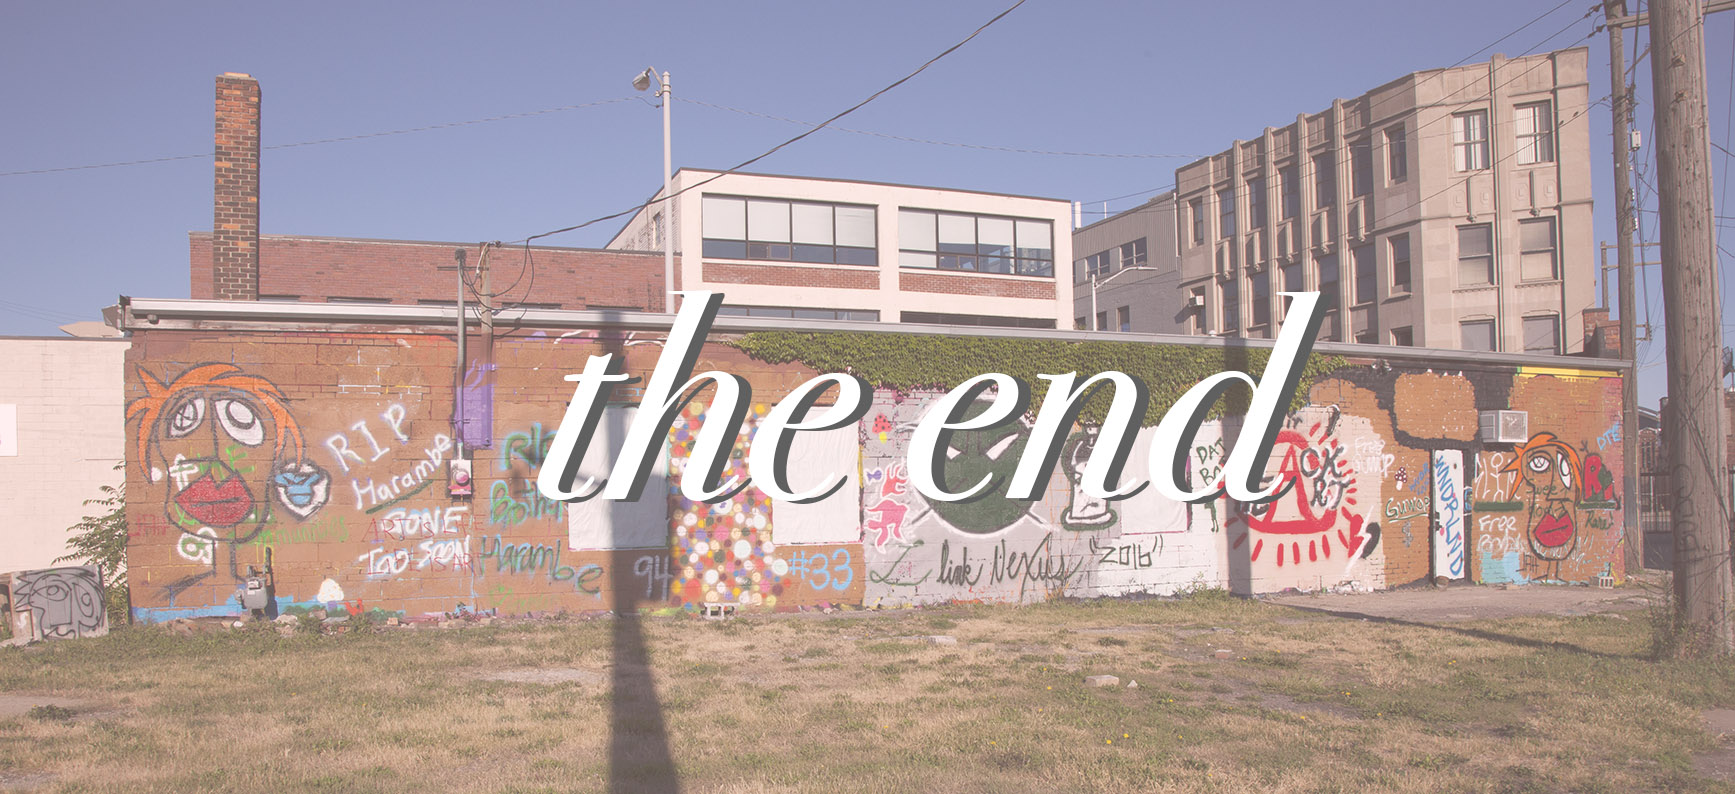 Thank you so much to all those who participated in this project and for donating so much beautiful, ephemeral work!  This website will stay live for the time being as a record of the works created.